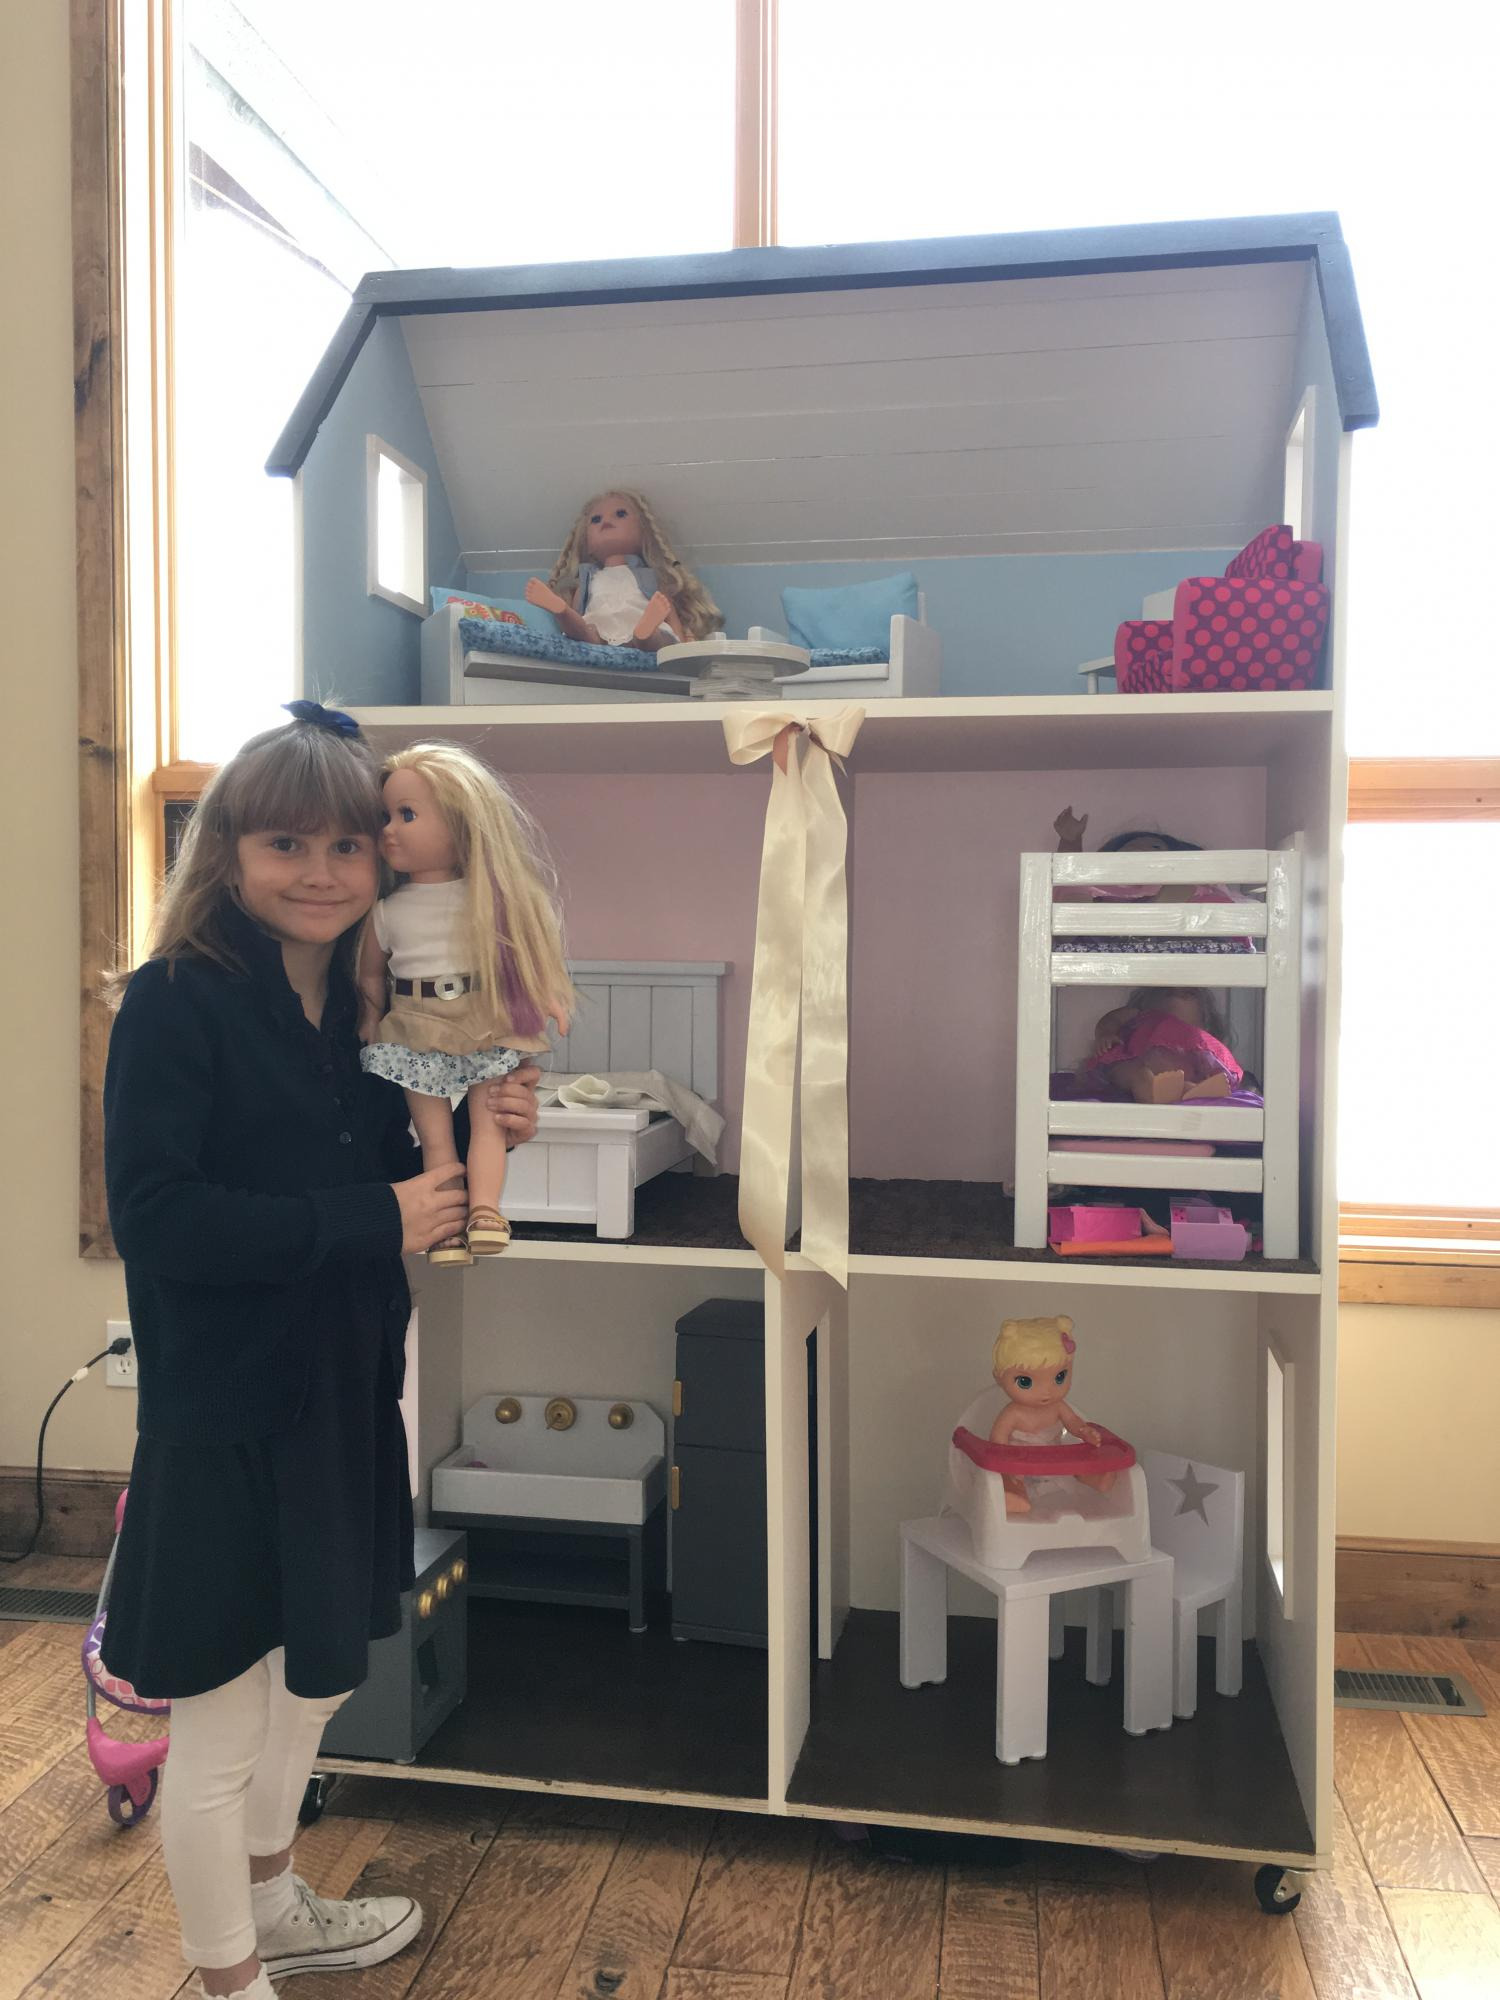 18 Inch Doll House Plans Lovely American Girl 3 Story Doll House and Furniture